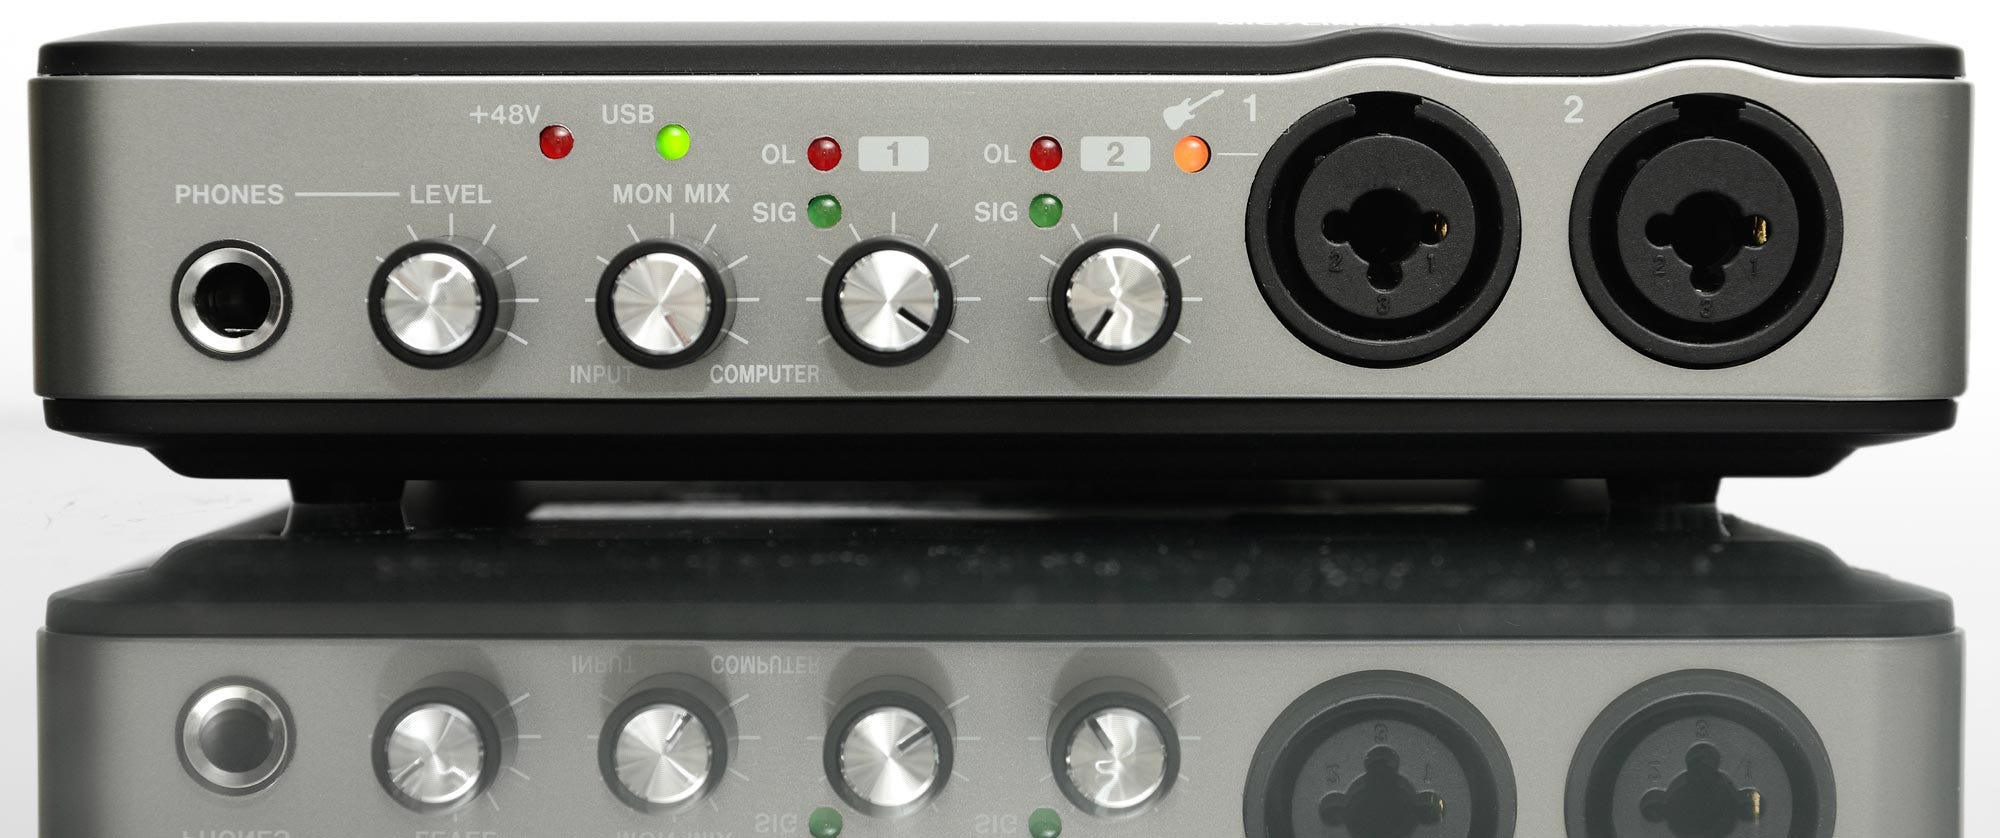 Best Audio Interfaces For Recording Adorama Learning Center The Preamplifier With Dual